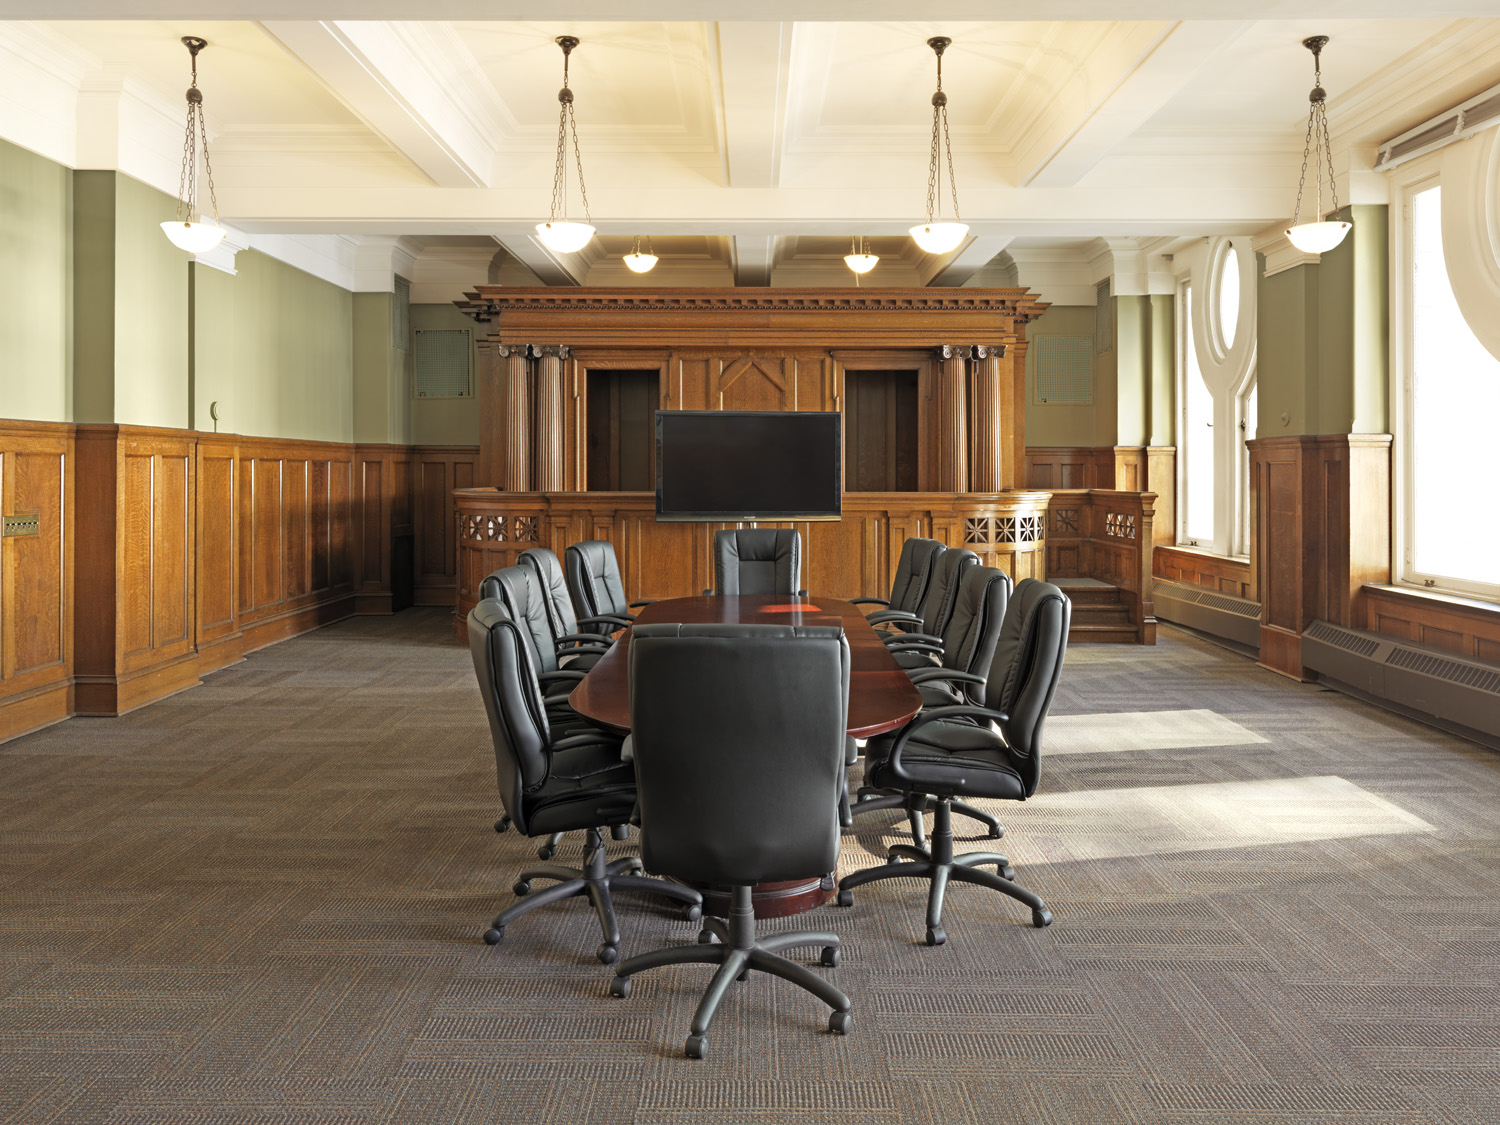 courtroom 302